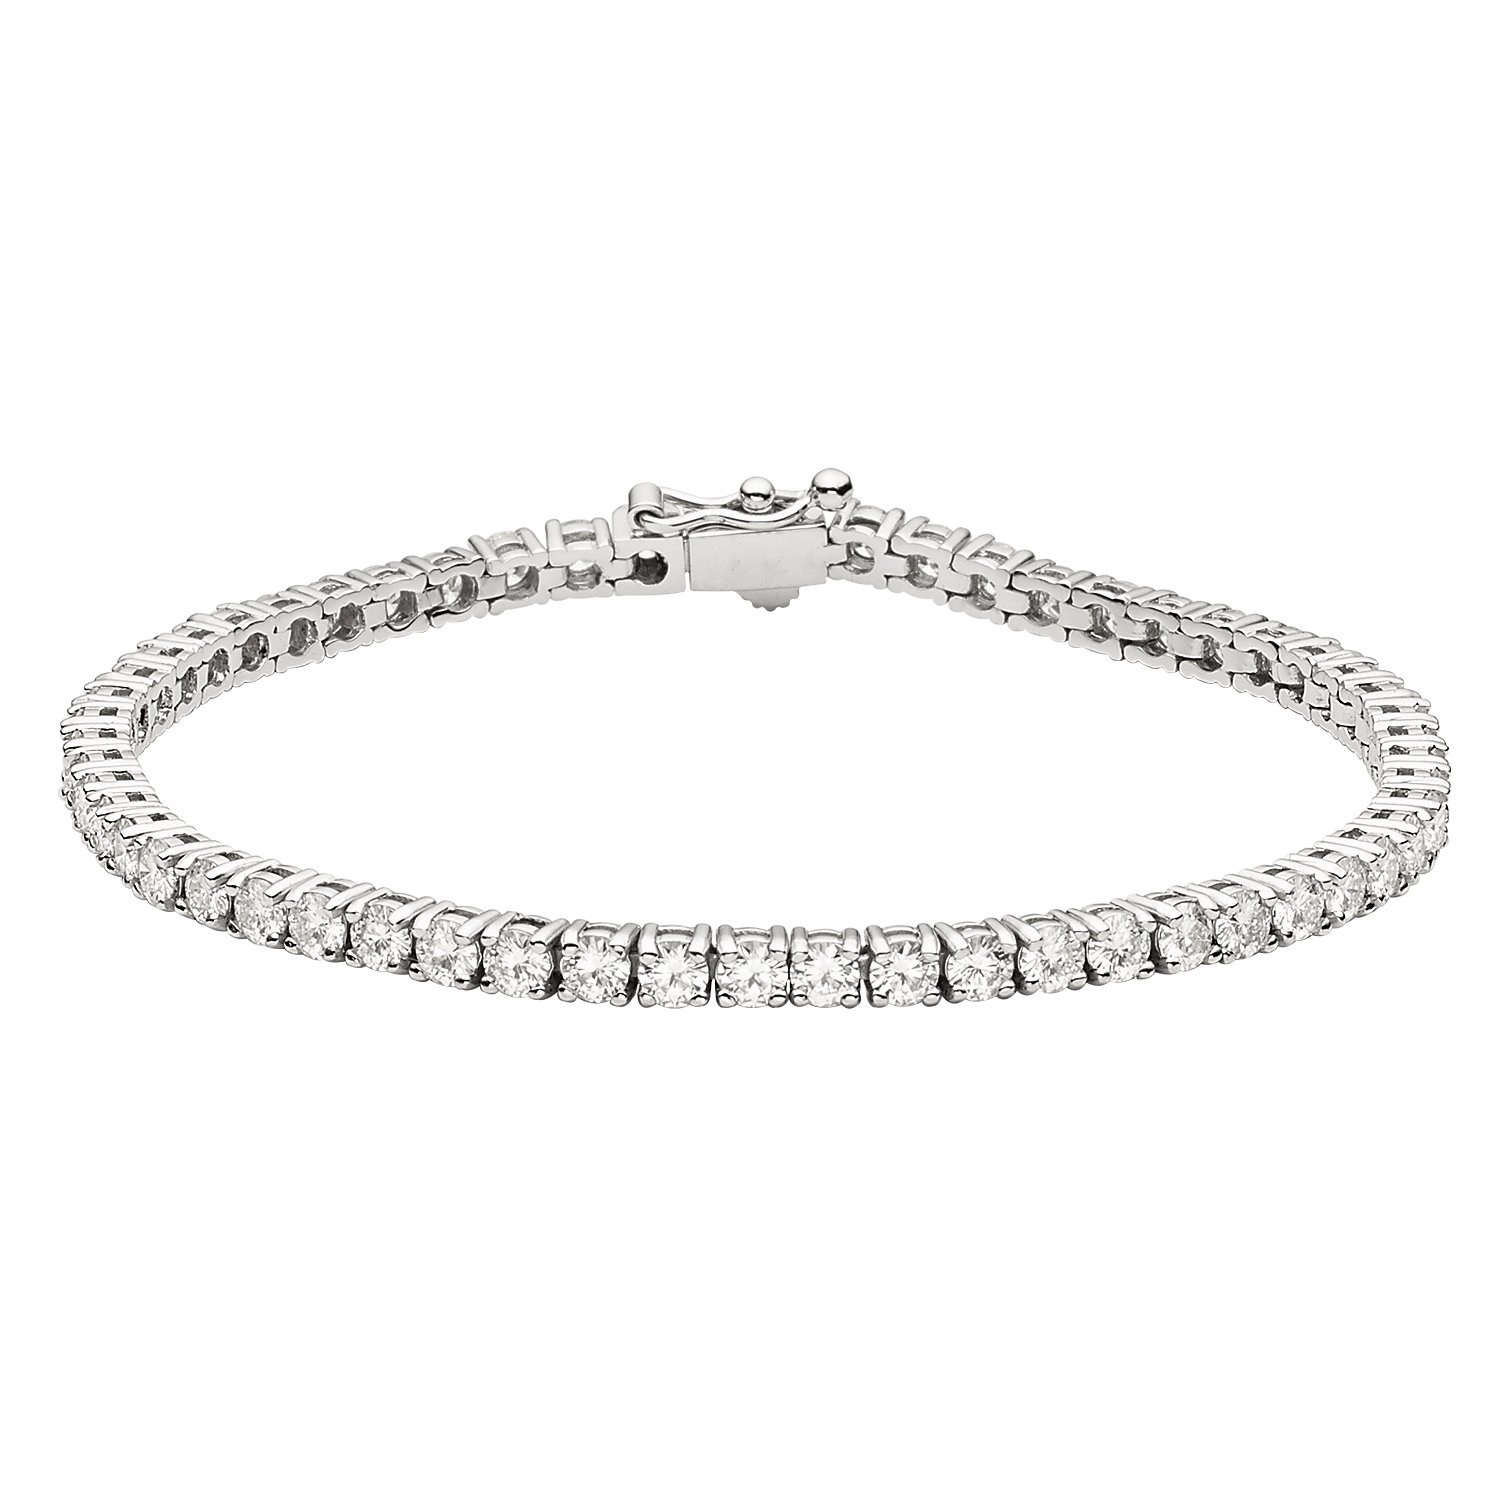 14K White Gold Round Brilliant Cut 3.0mm Moissanite Tennis Bracelet, 5.30cttw DEW By Charles & Colvard by Charles & Colvard